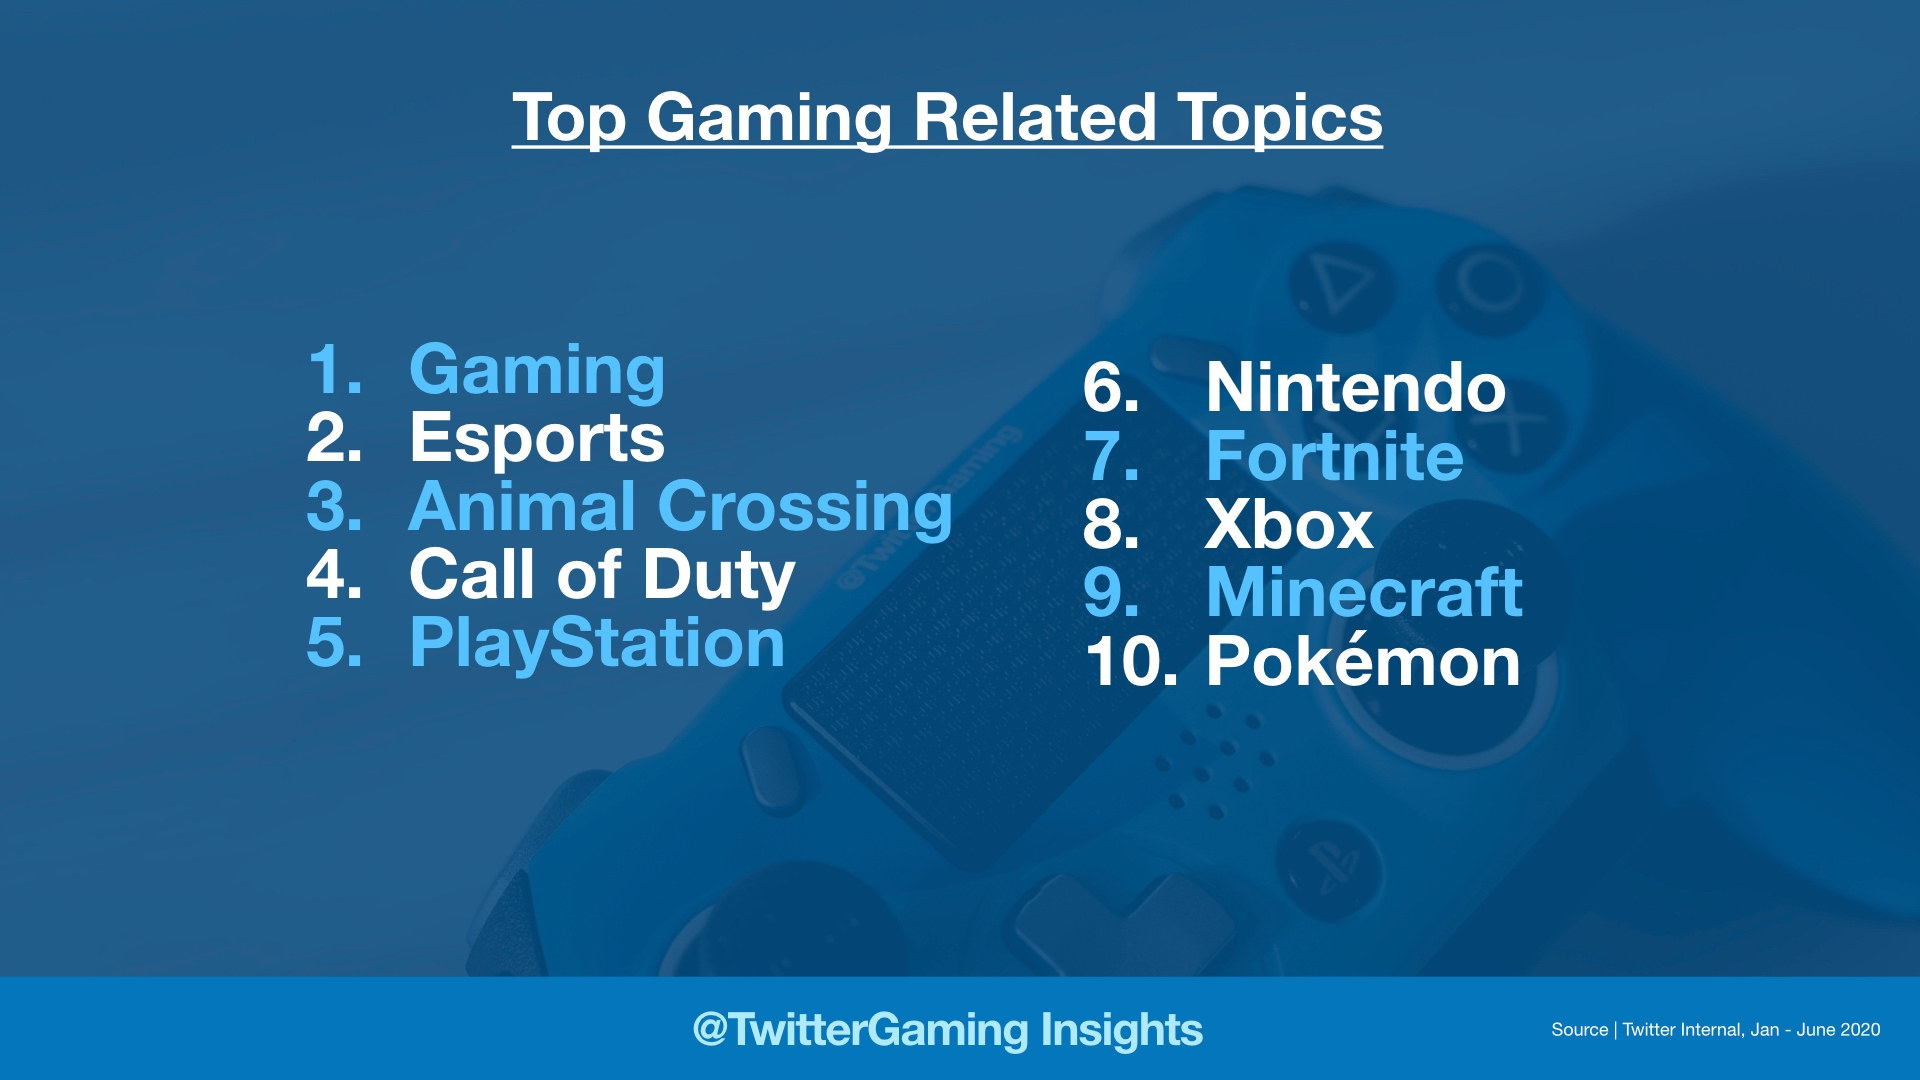 Most followed gaming topics on Twitter